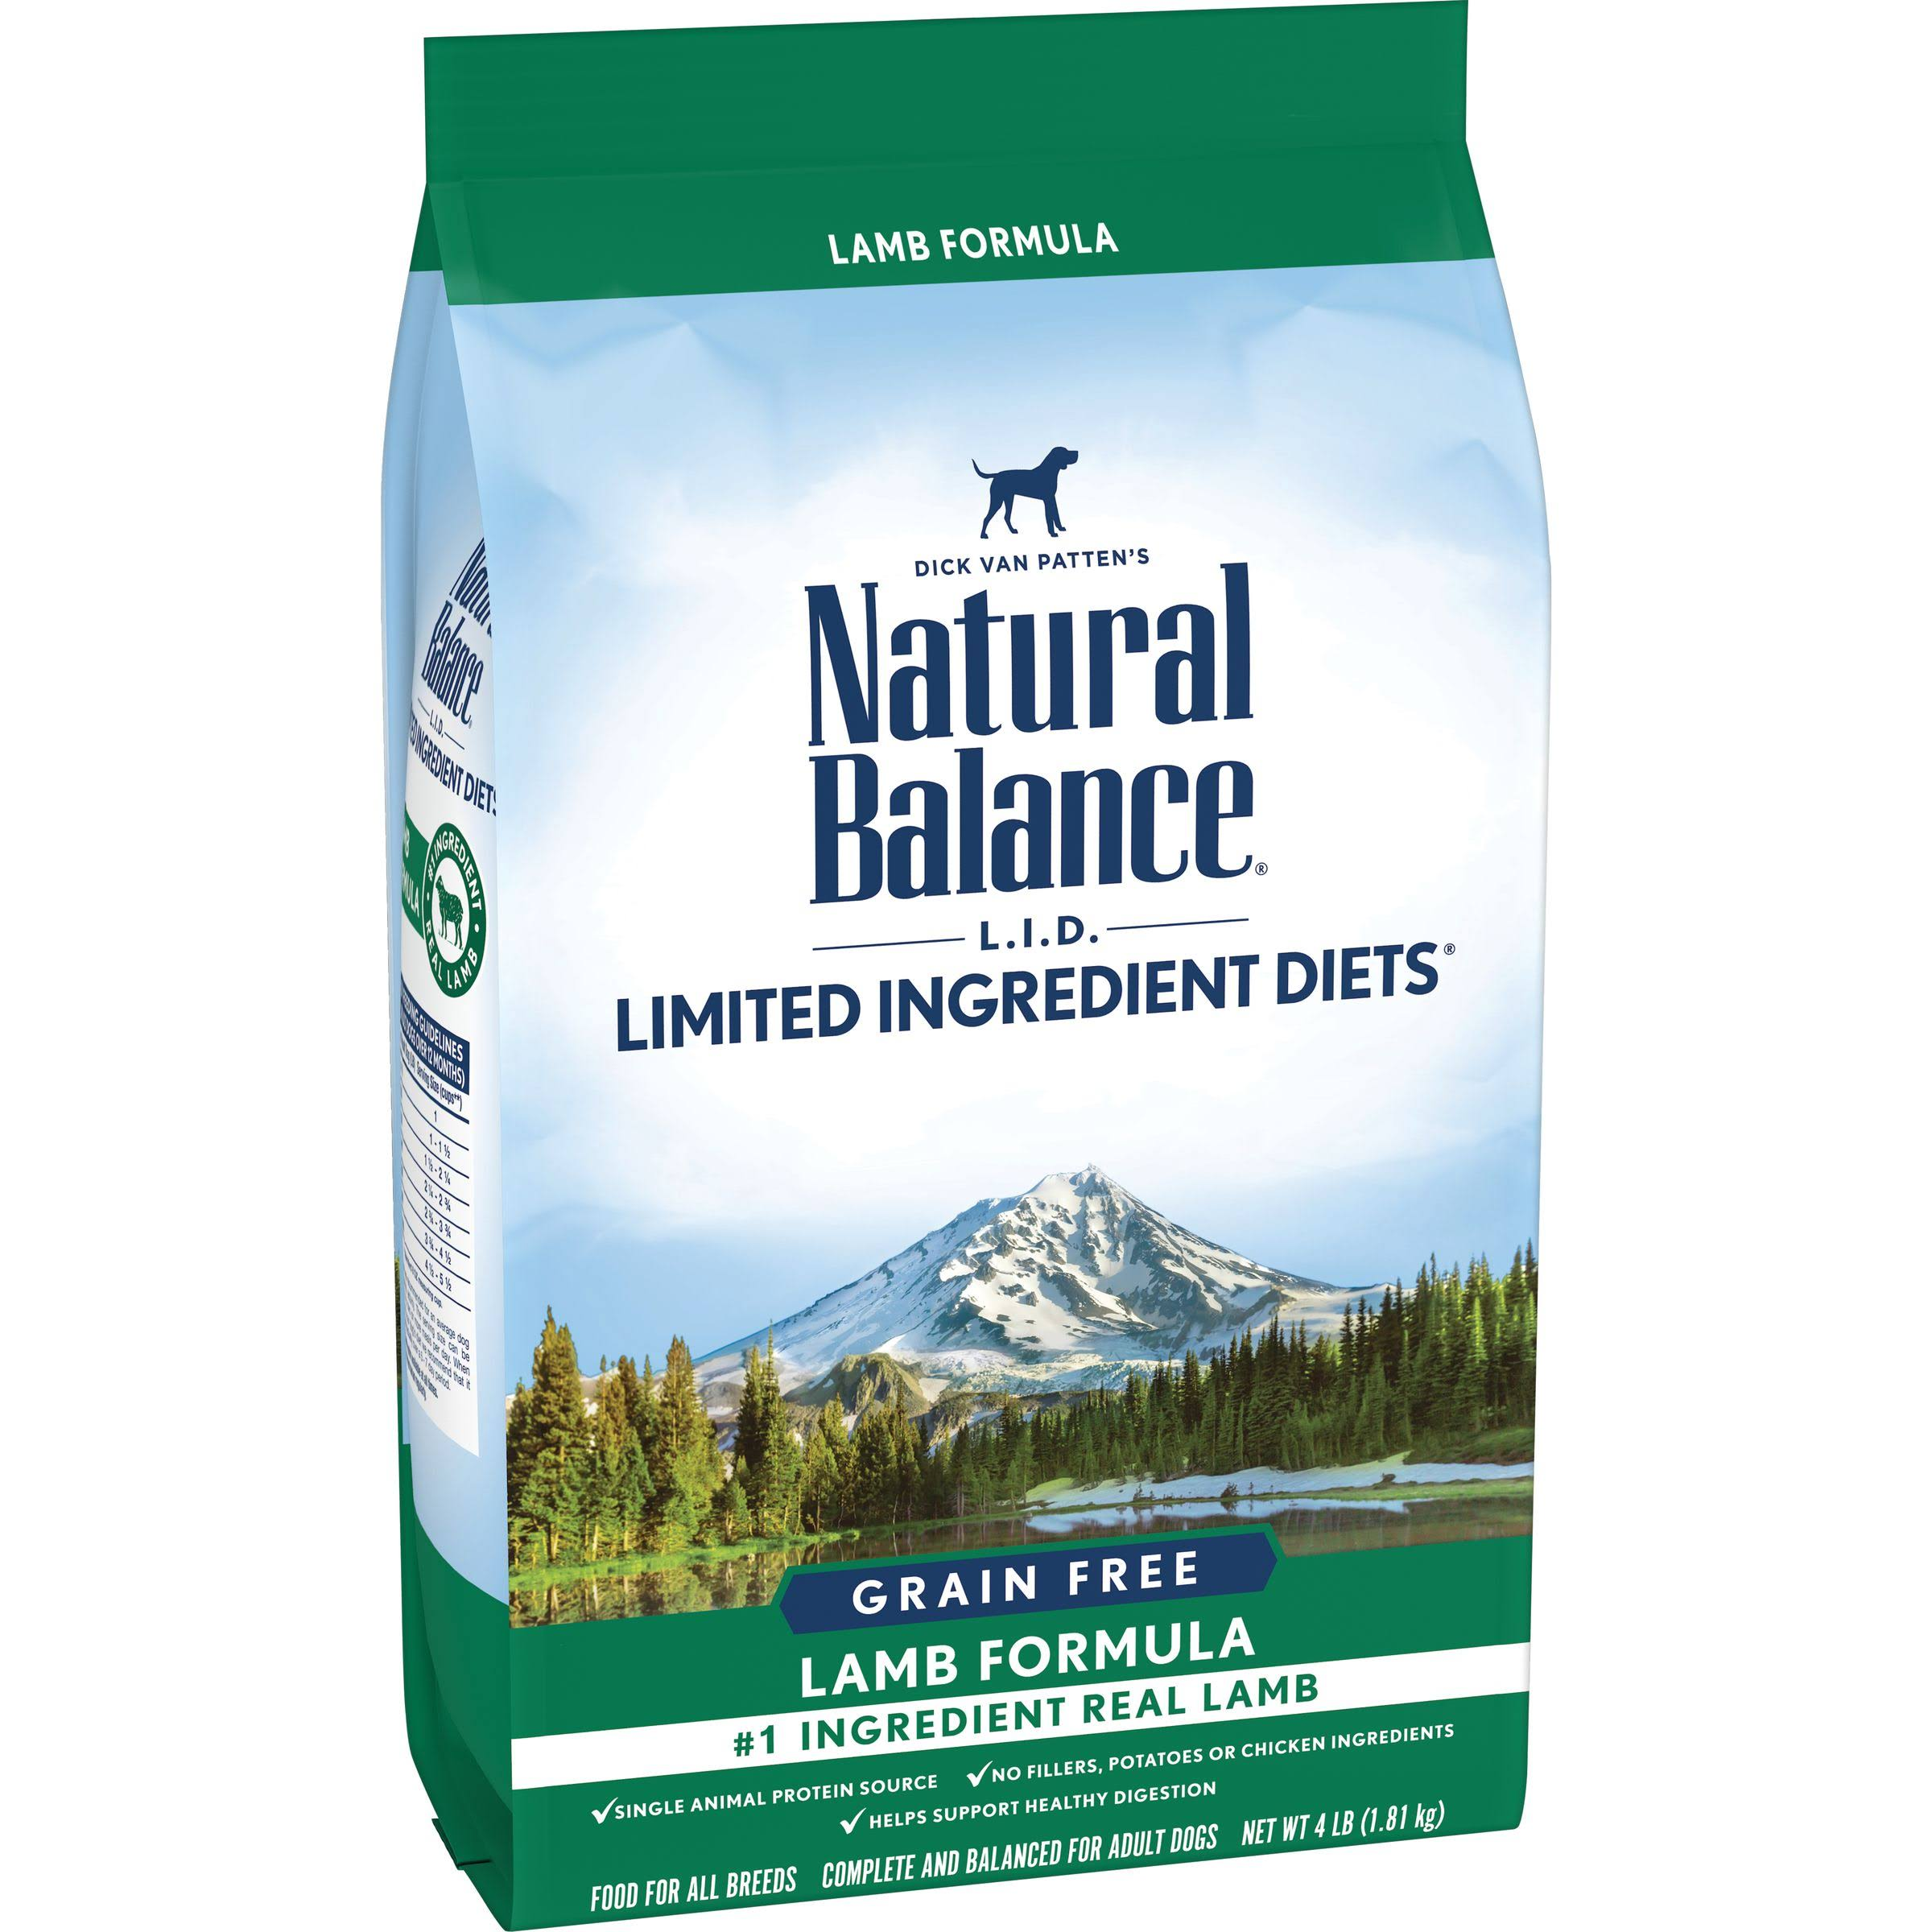 Natural Balance LID High Protein Dog Food - Lamb Formula, 4lbs